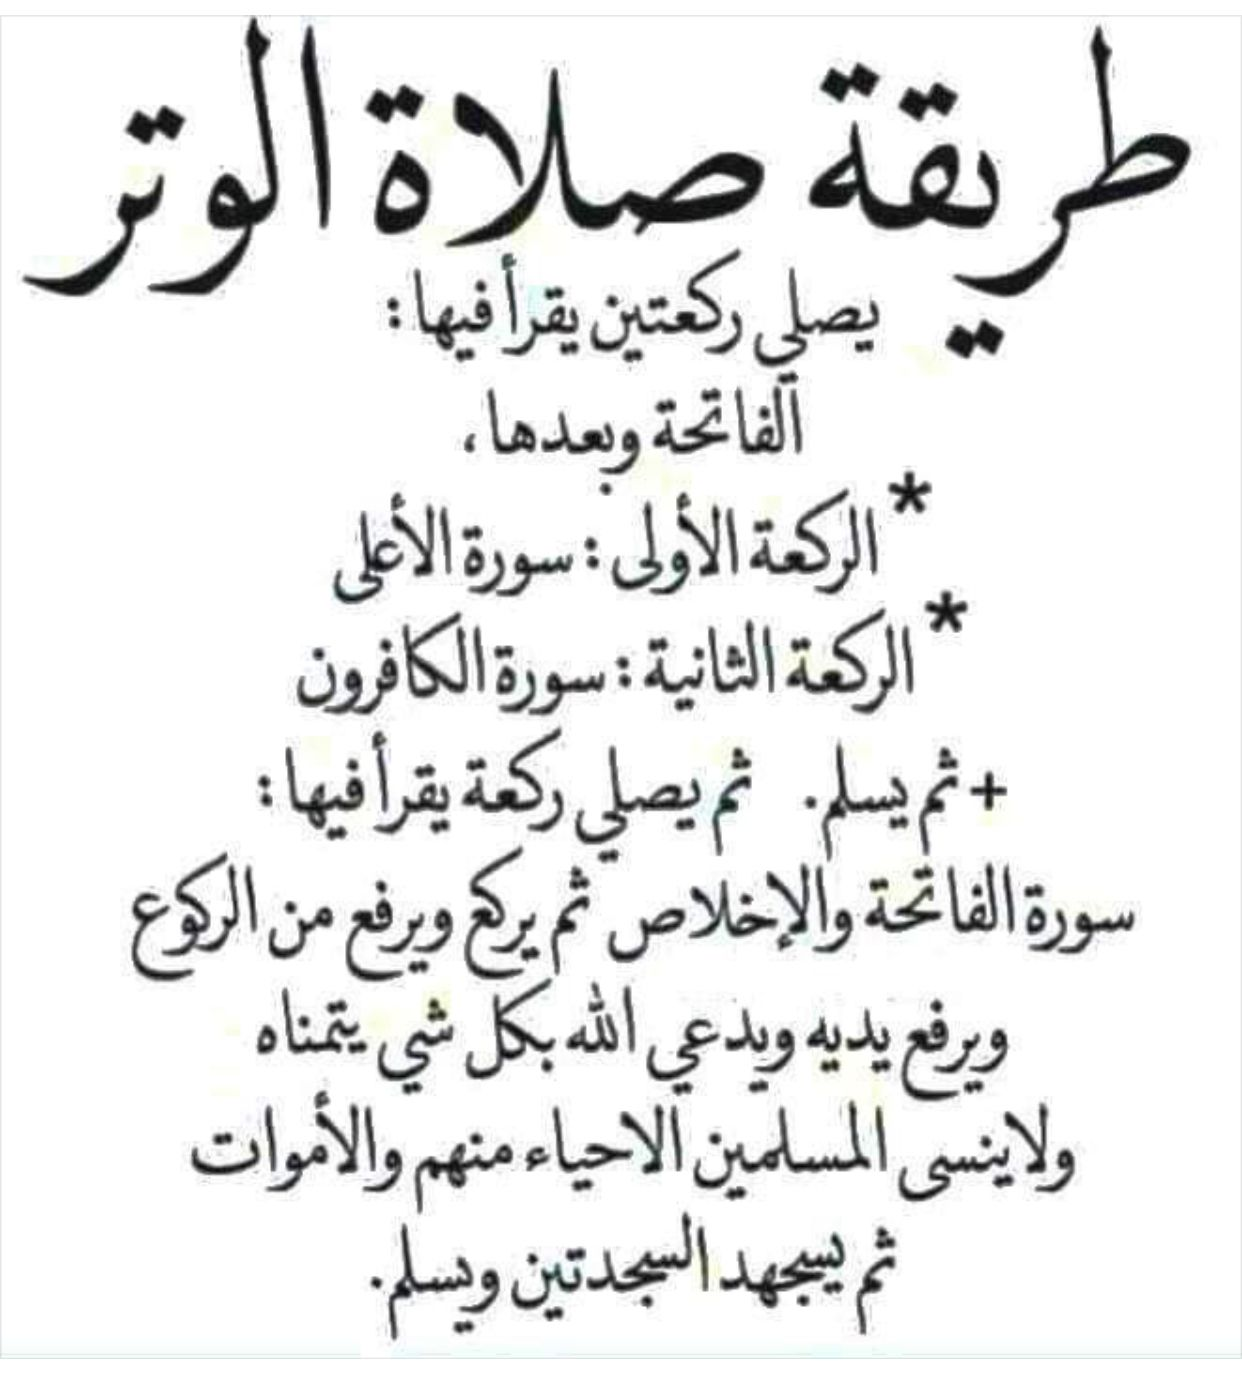 Pin By Reham Seif On Recettes Islamic Inspirational Quotes Islamic Love Quotes Islam Facts